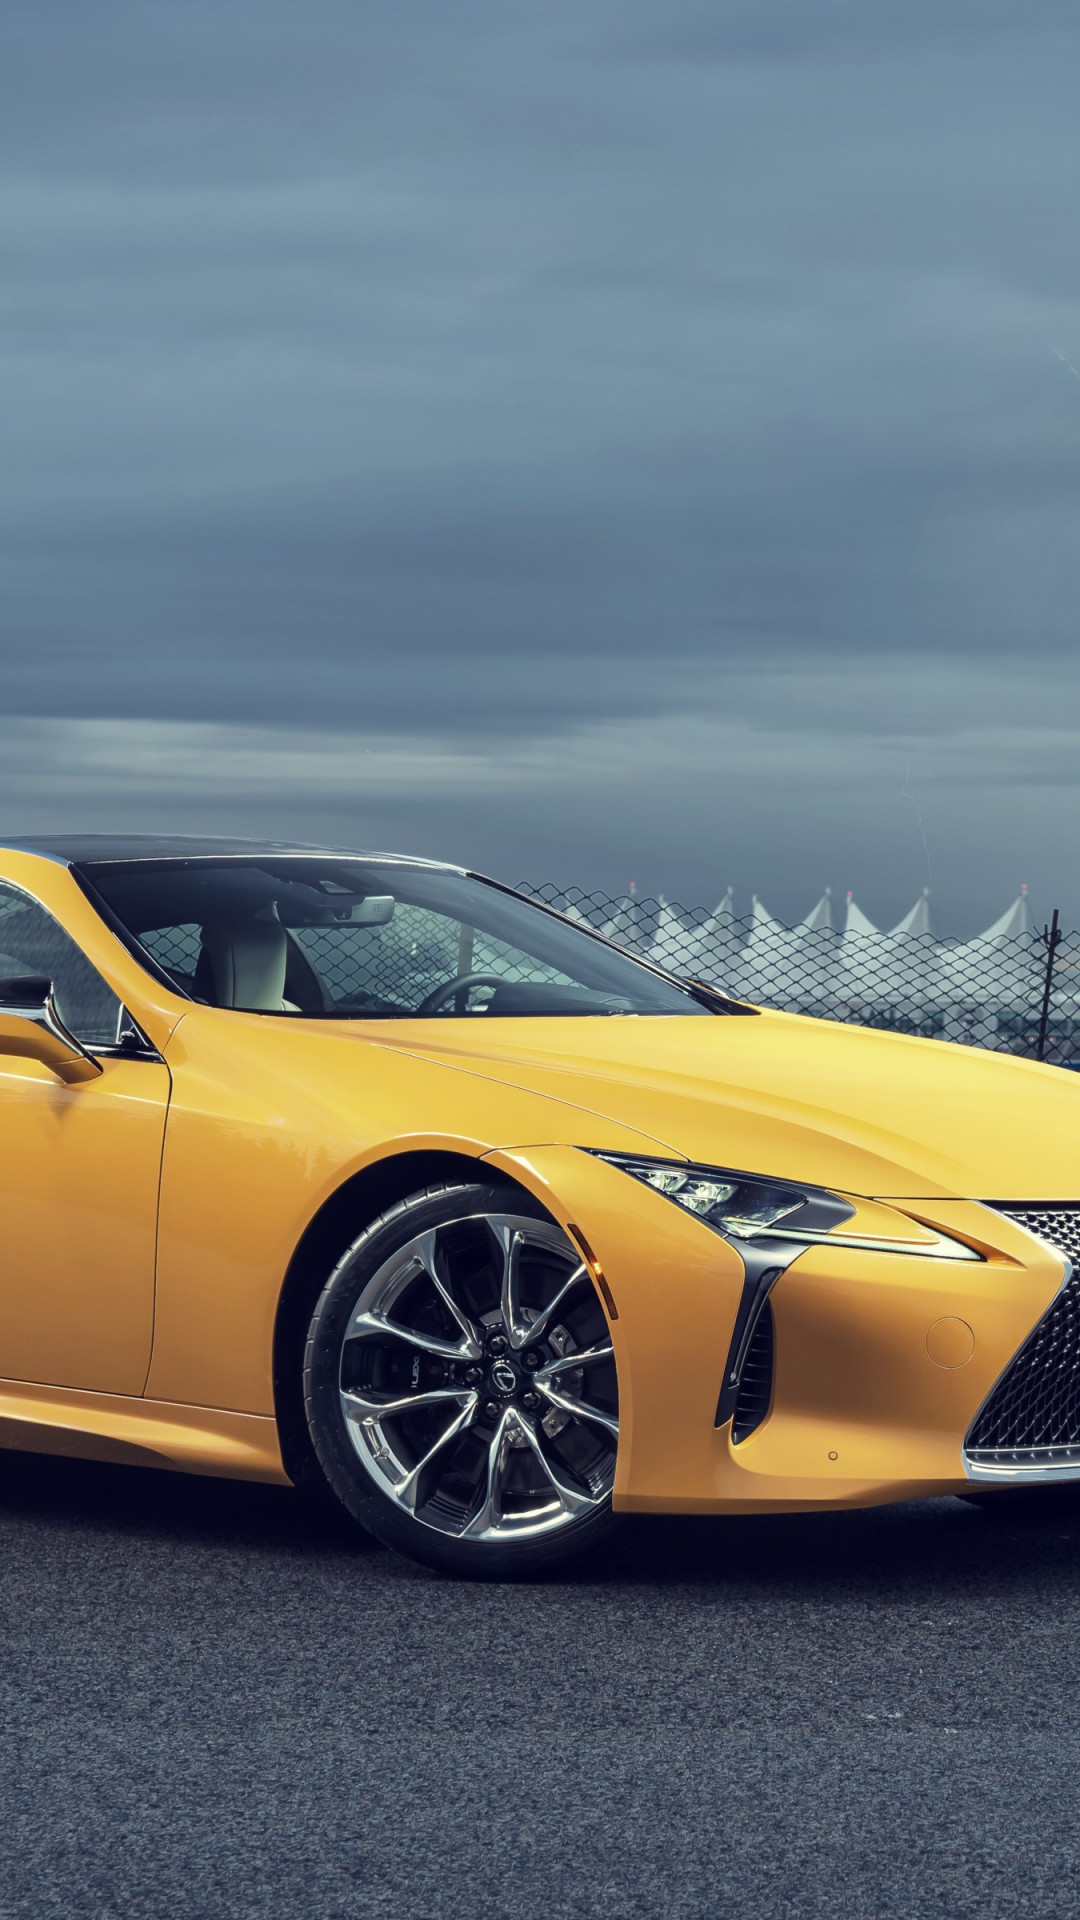 Lexus LC 500 Inspiration Series wallpaper 1080x1920